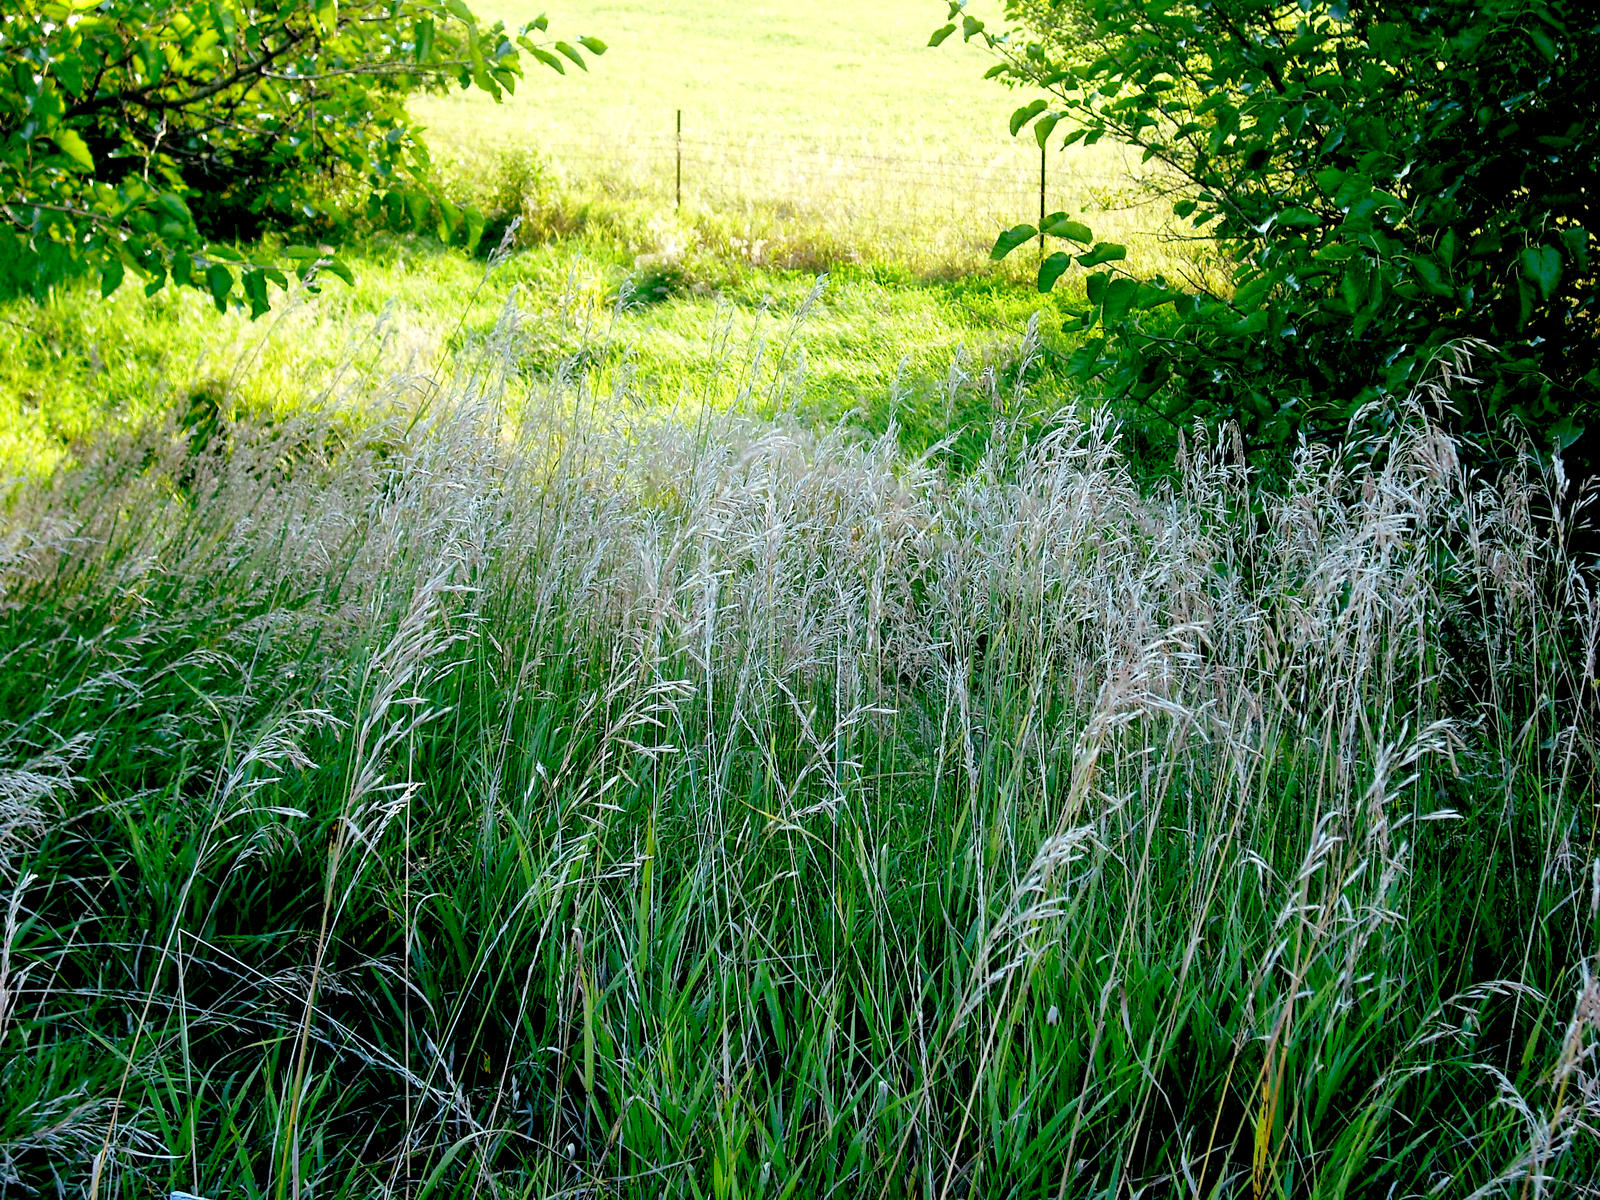 Tall grass along the road by krissybdesigns on deviantart for Long grass plants